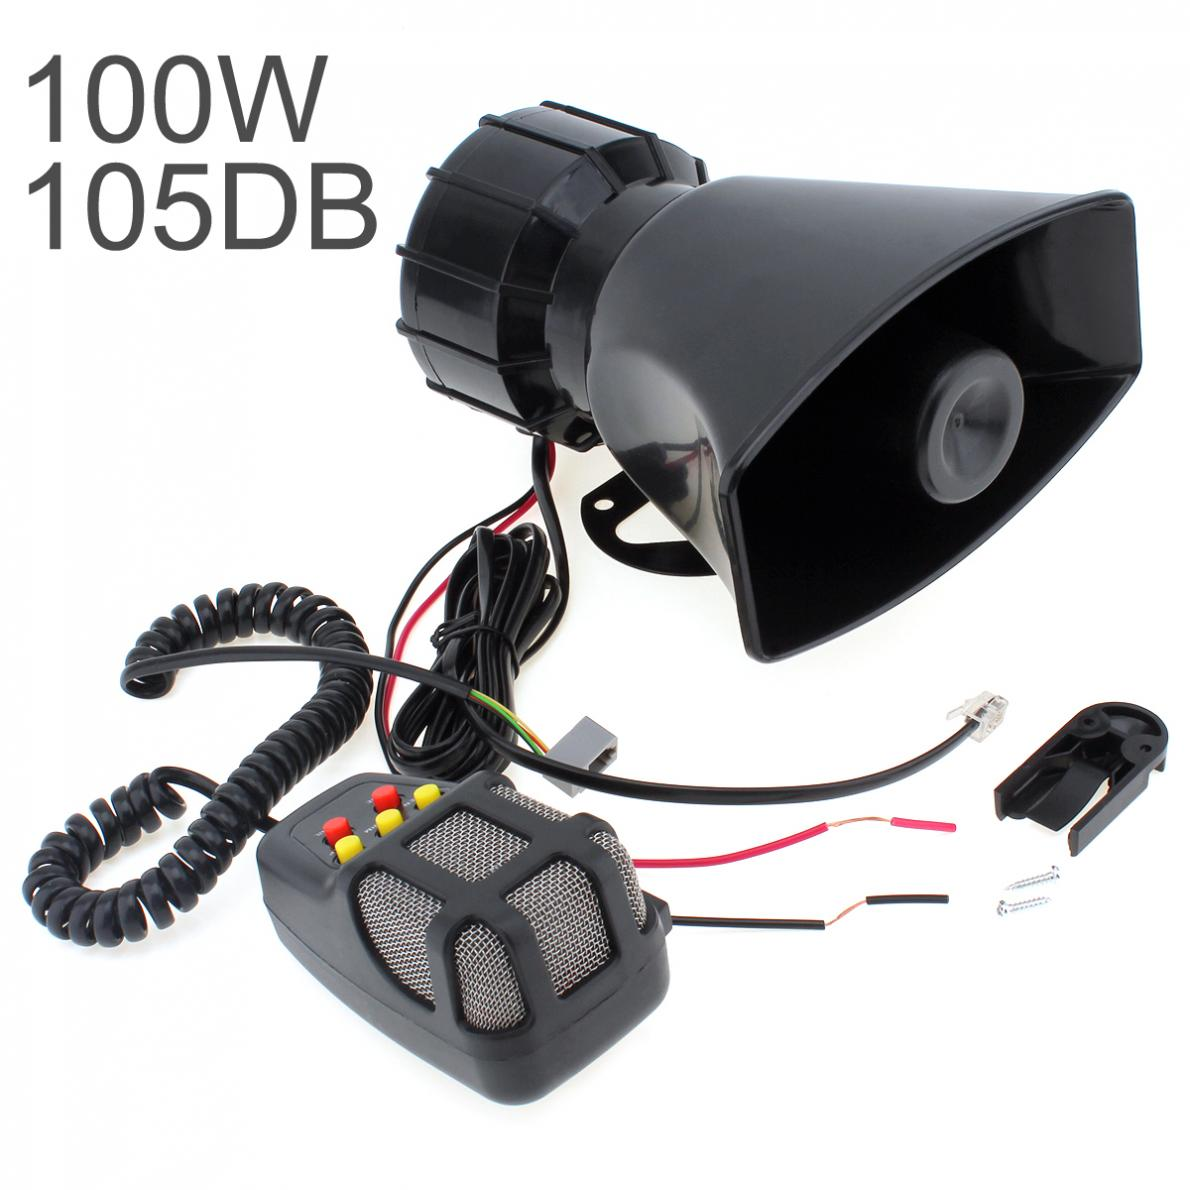 DC 12V 100W Motorcycle Car Auto Vehicle Truck 5 Sound Tone Loud Horn Siren Police Firemen Ambulance Warning Alarm Loudspeaker digitalboy car motorcycle dc 12v 100w loud air horn 125db siren sound speaker megaphone alarm for ambulance truck boat 6 tones